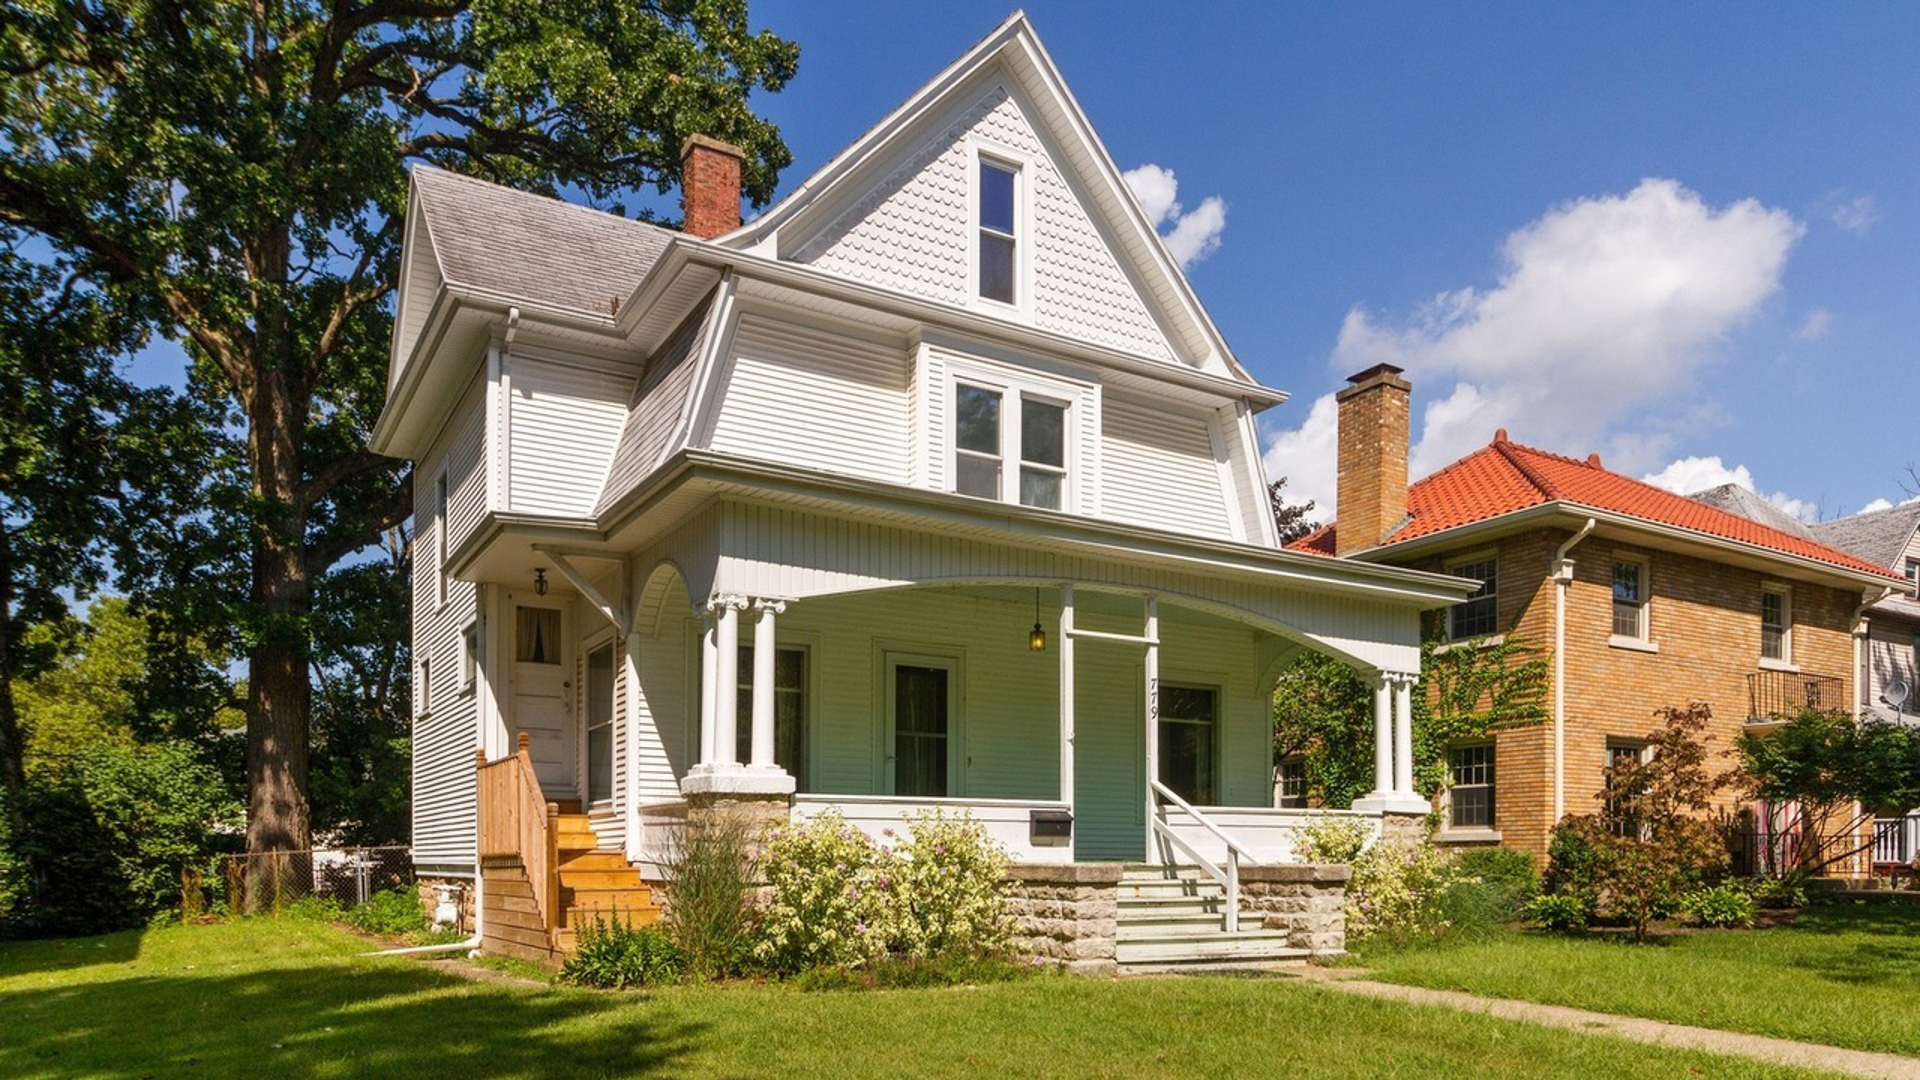 9 Houses You Could Buy for the Cost of College Tuition